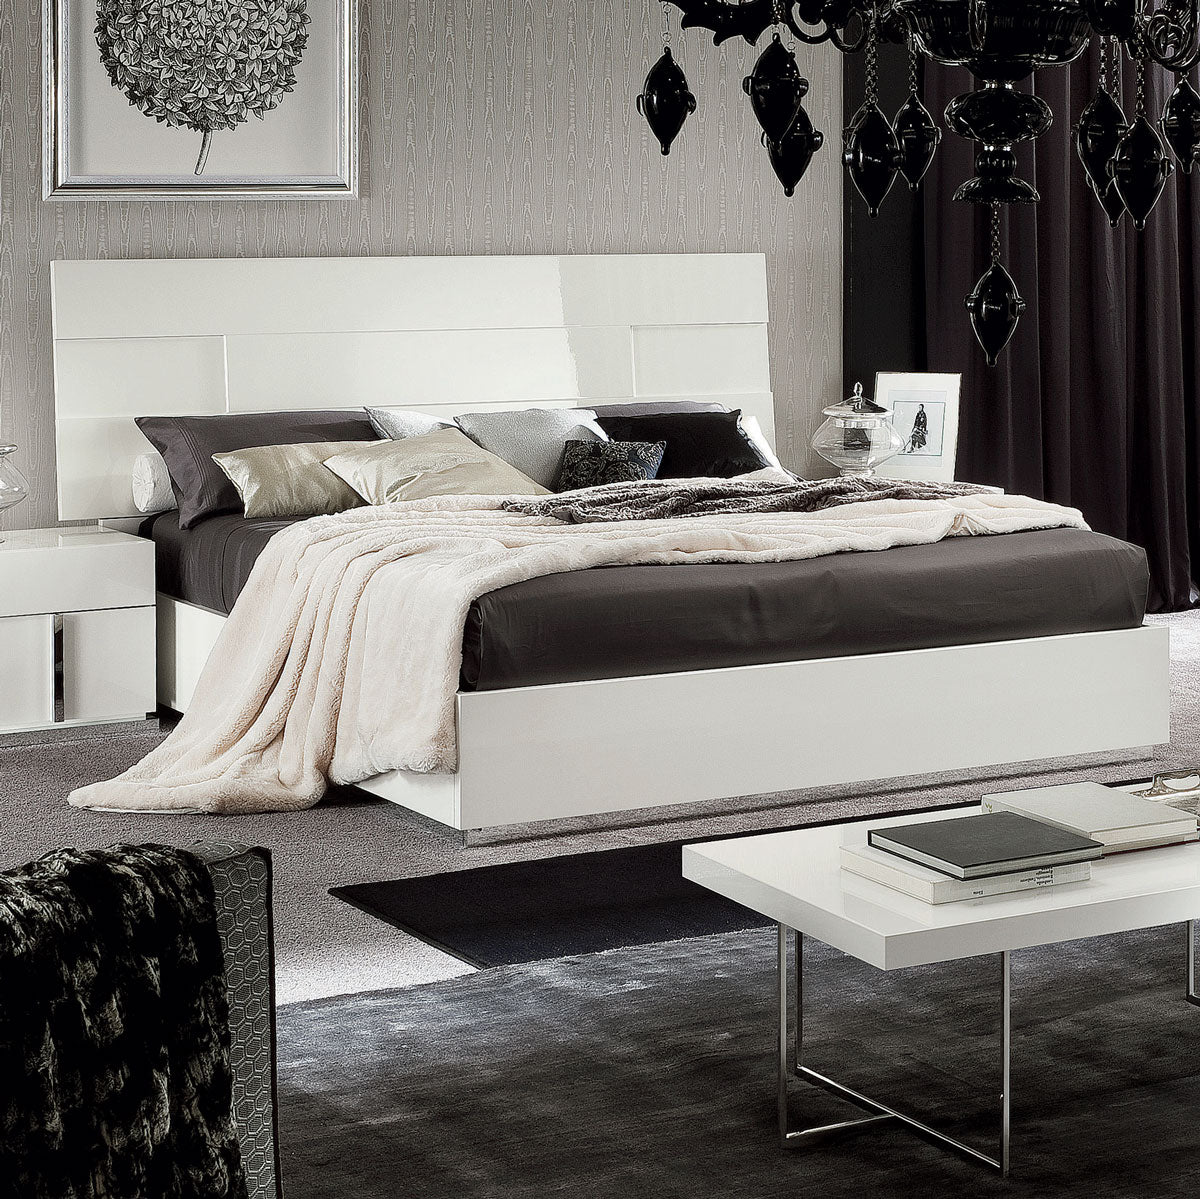 ALF Canova Bedroom Collection - Isingtec